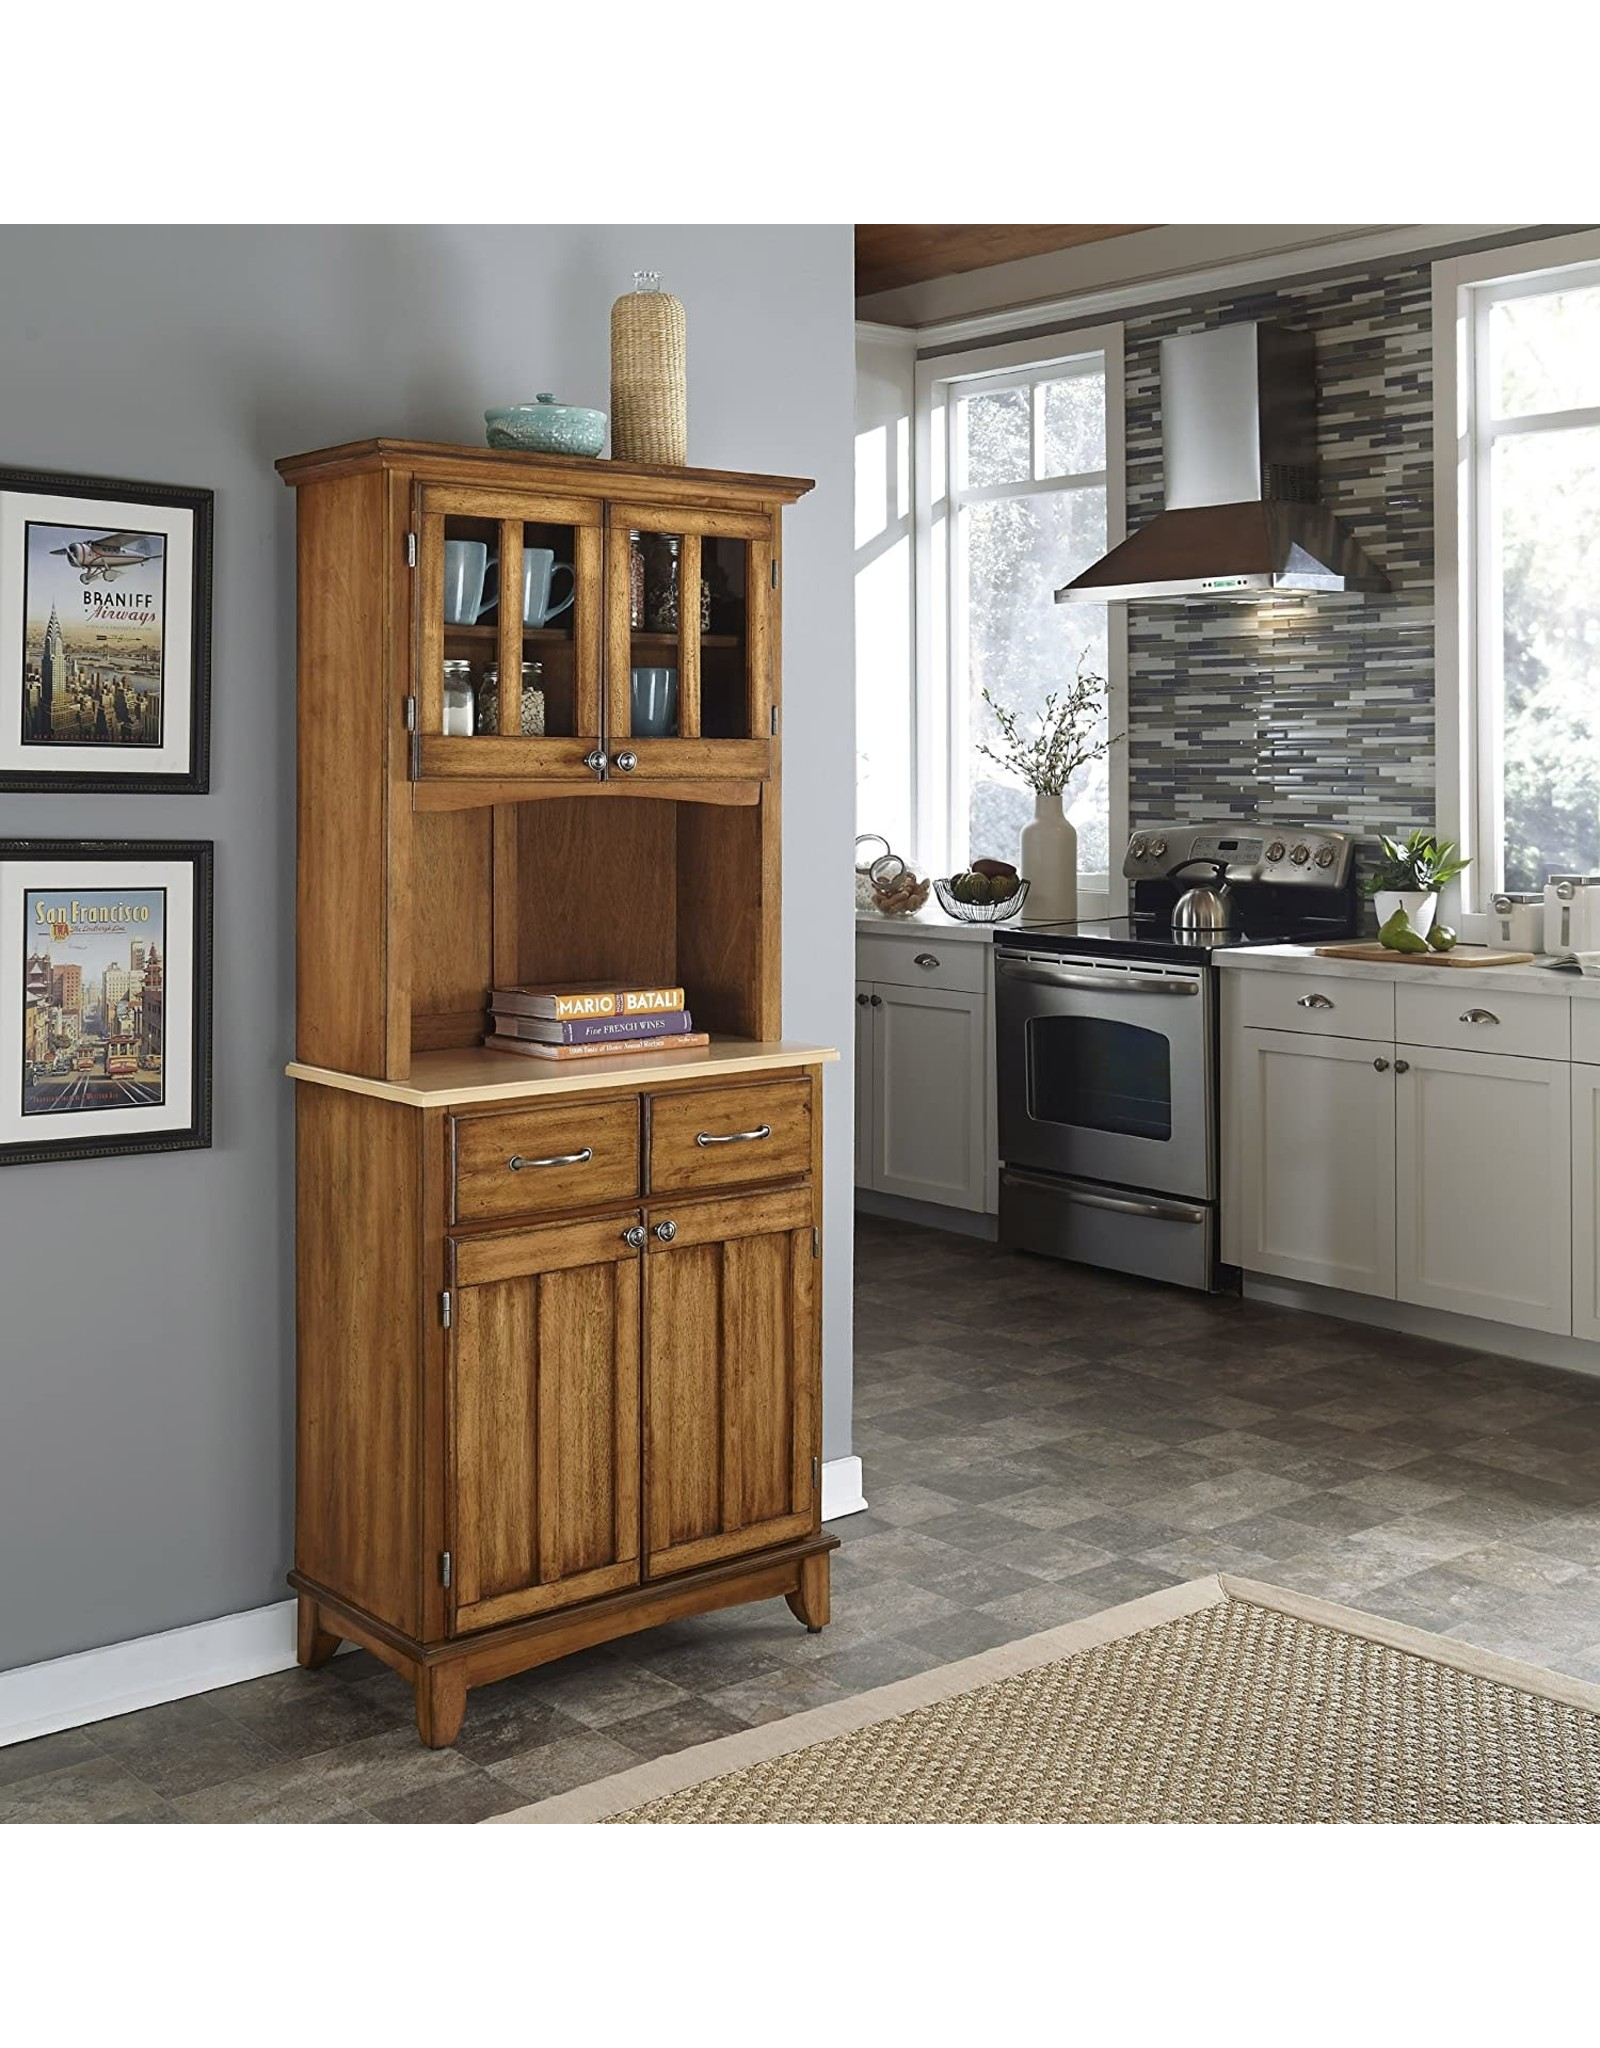 Home Styles Home Styles Buffet of Buffets Cottage Oak with Natural Wood Top, Hutch, Two Wood Door Panels, Two Drawers with Brushed Steel Pulls, Two Plexiglas Framed Doors, and Adjustable Shelves